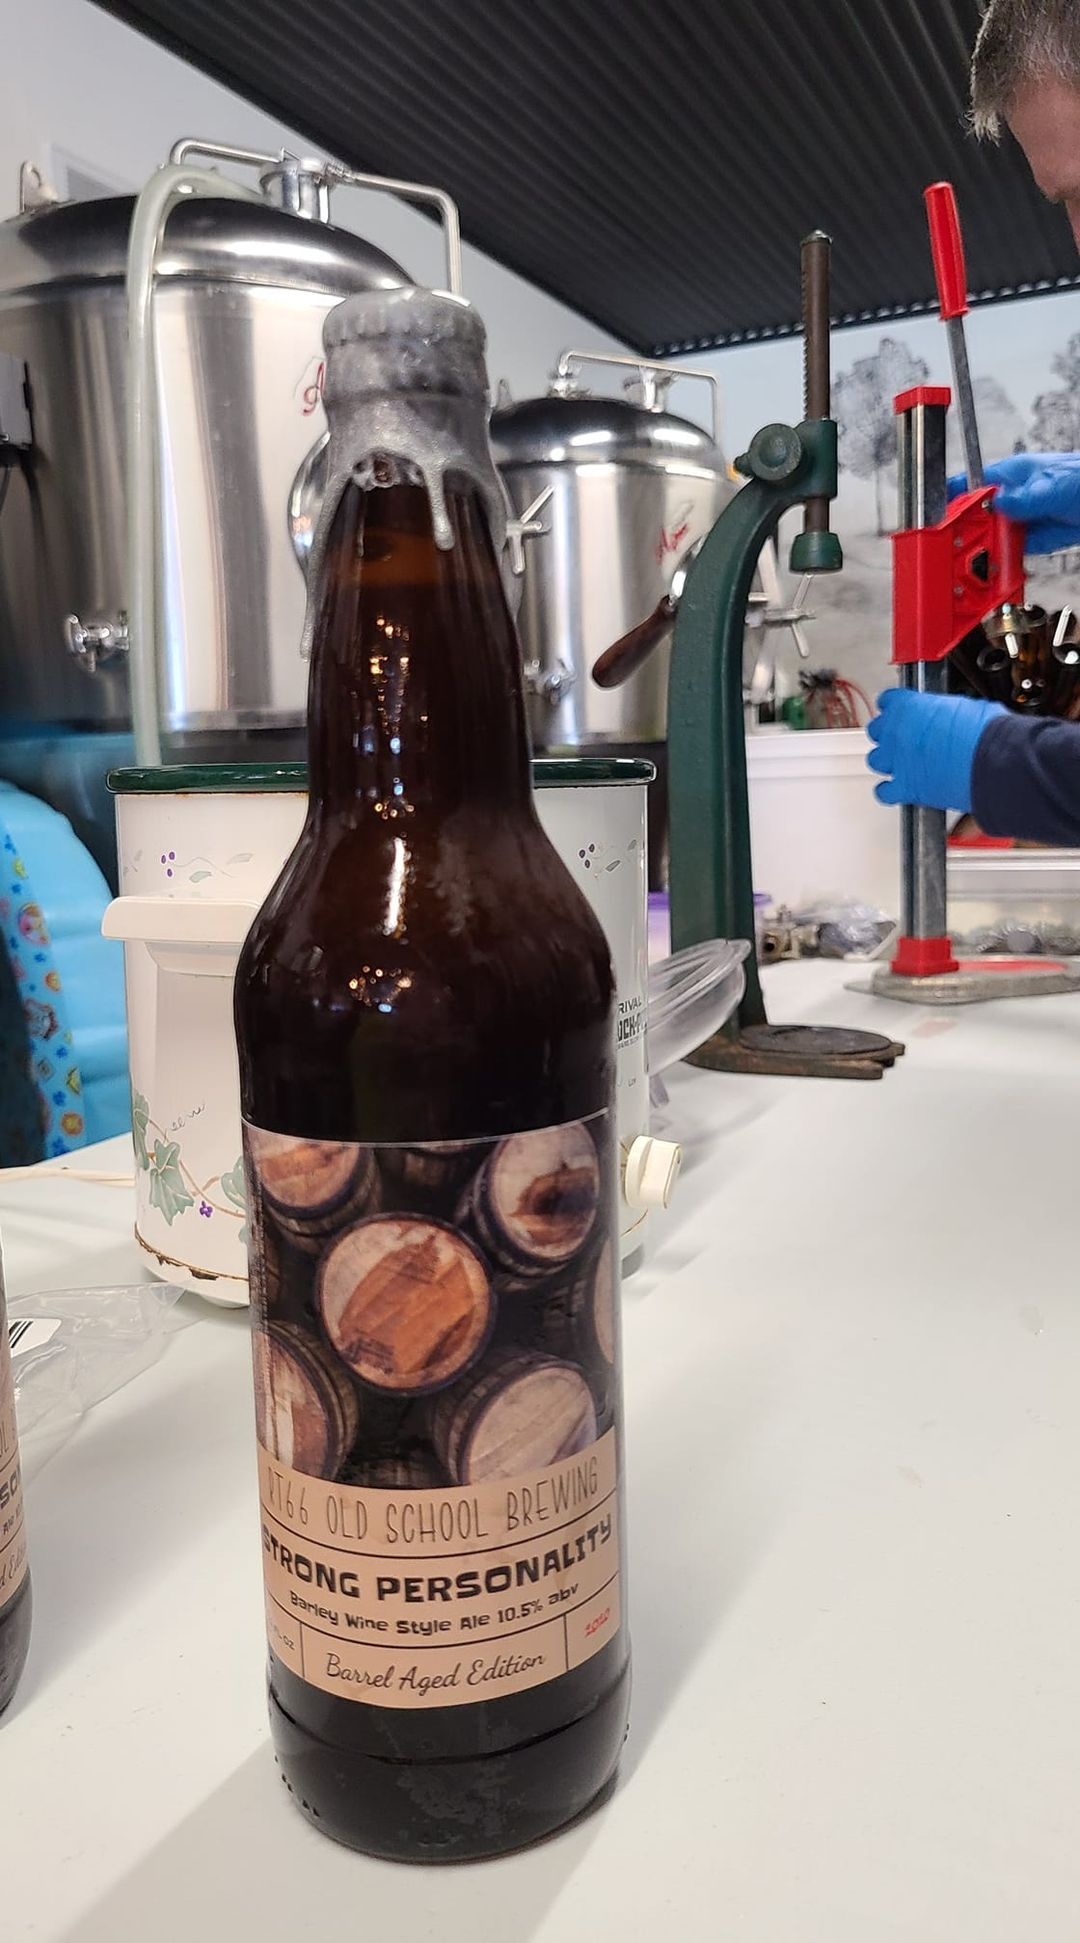 Bottle of Rt66 Old School Brewing's Storng Personality